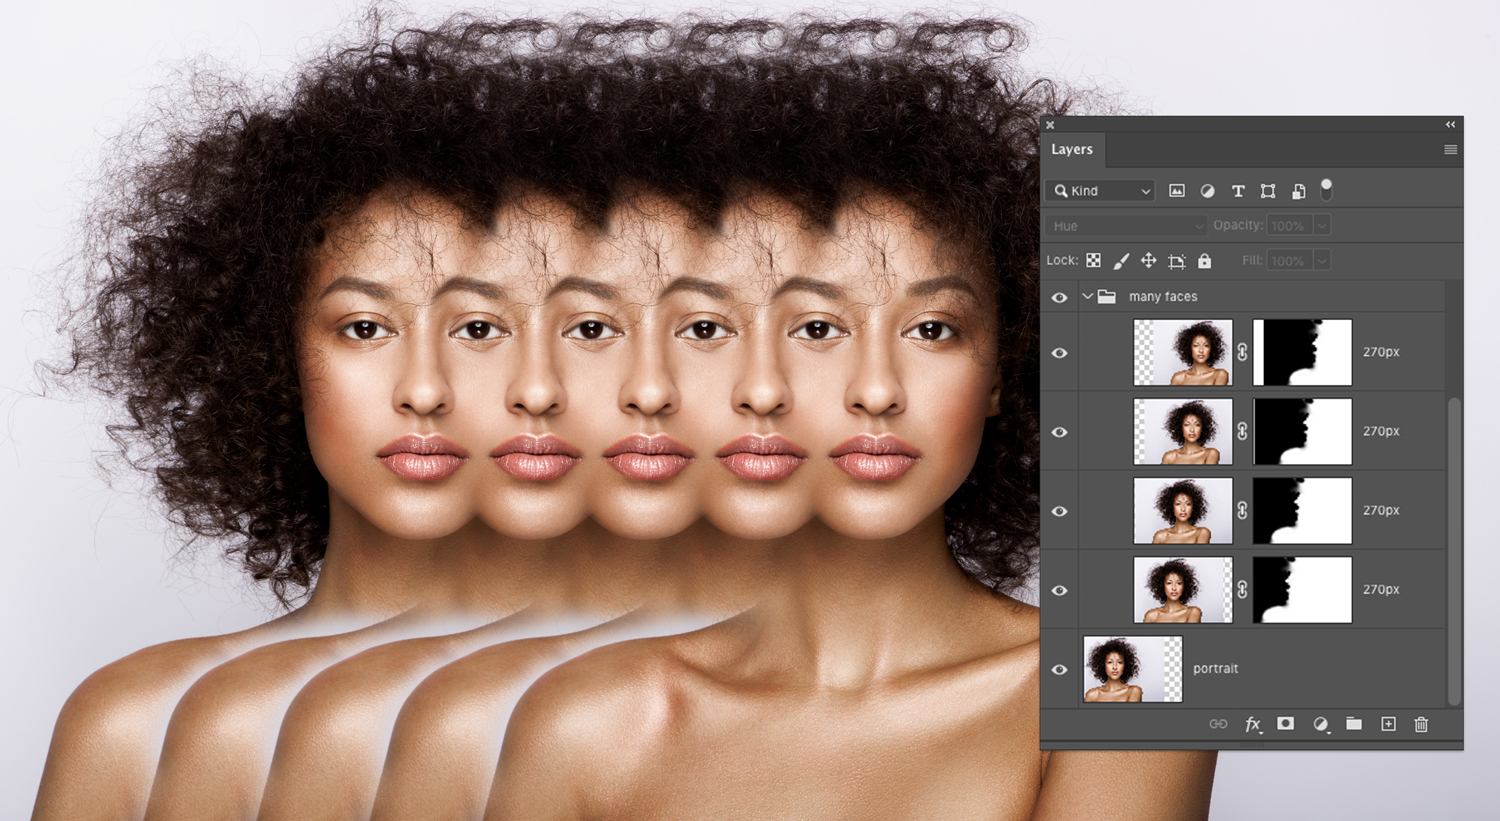 Five duplicated faces and Photoshop's Layers panel with duplicate masks